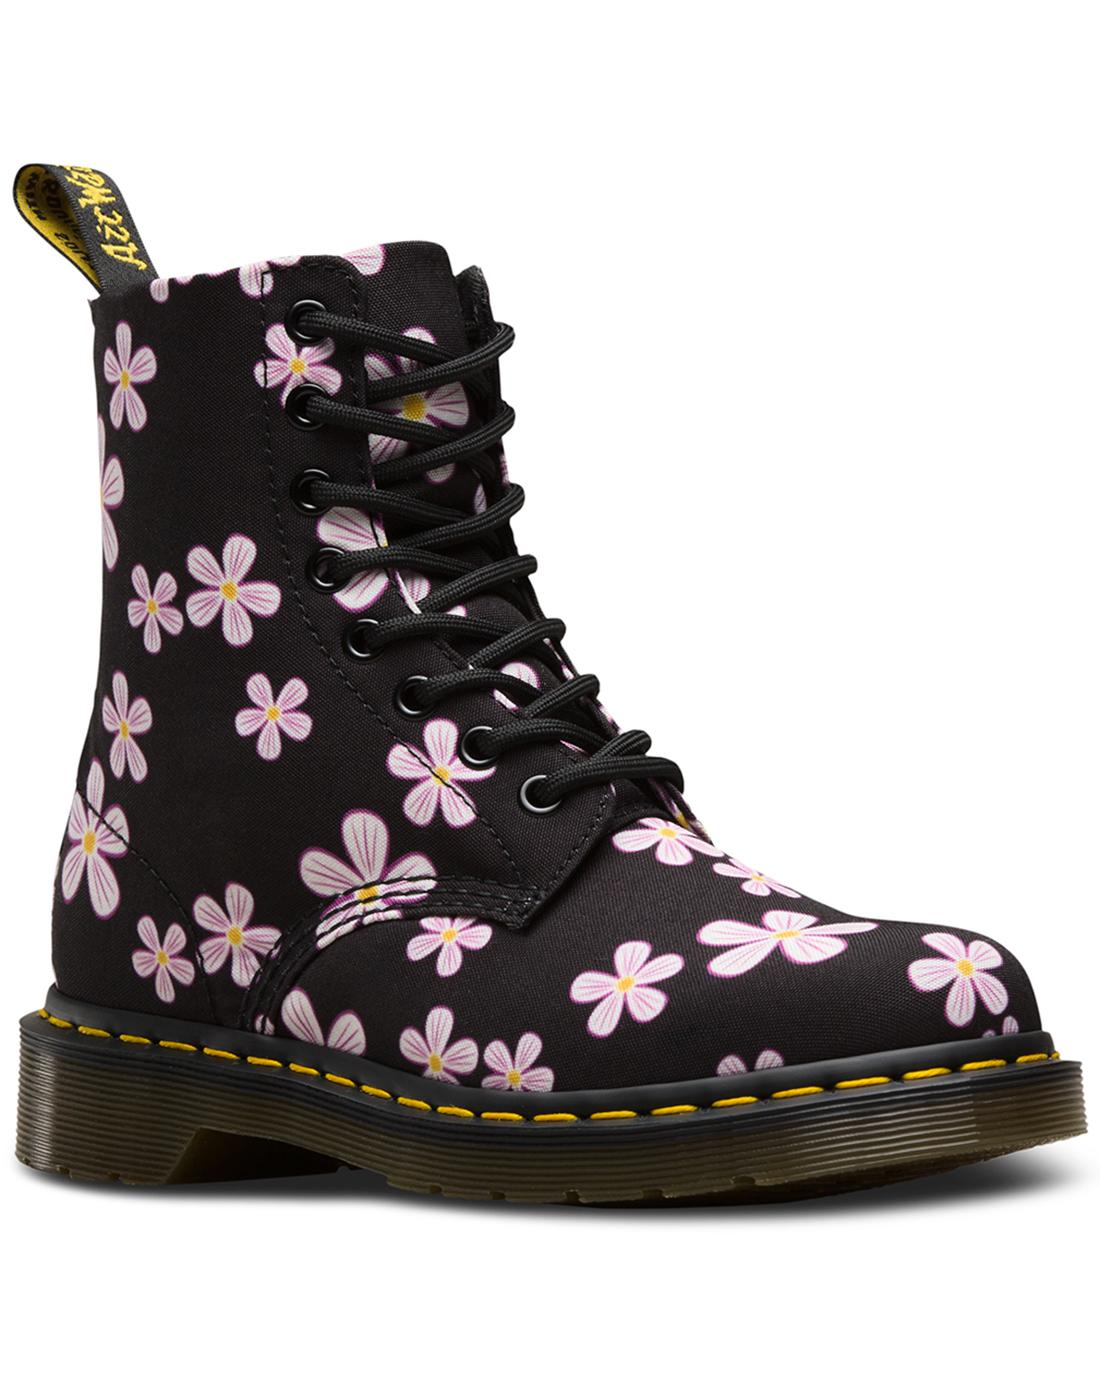 Page Meadow DR MARTENS 60s Floral Canvas Boots B